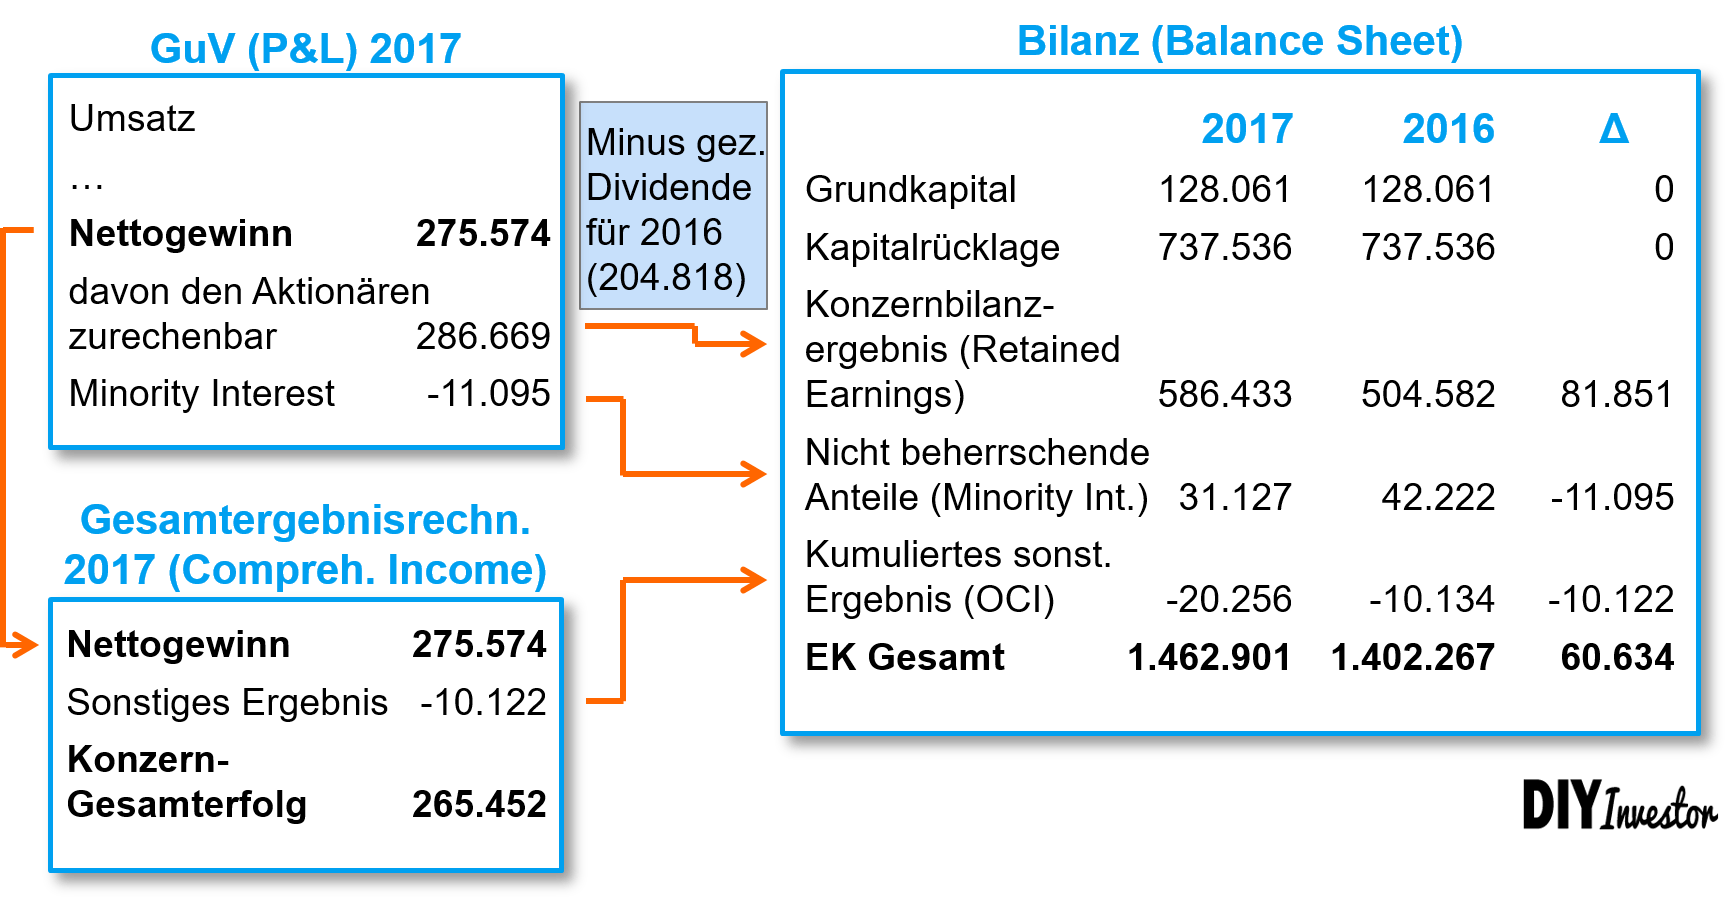 Other Comprehensive Income - Gesamtergebnisrechnung